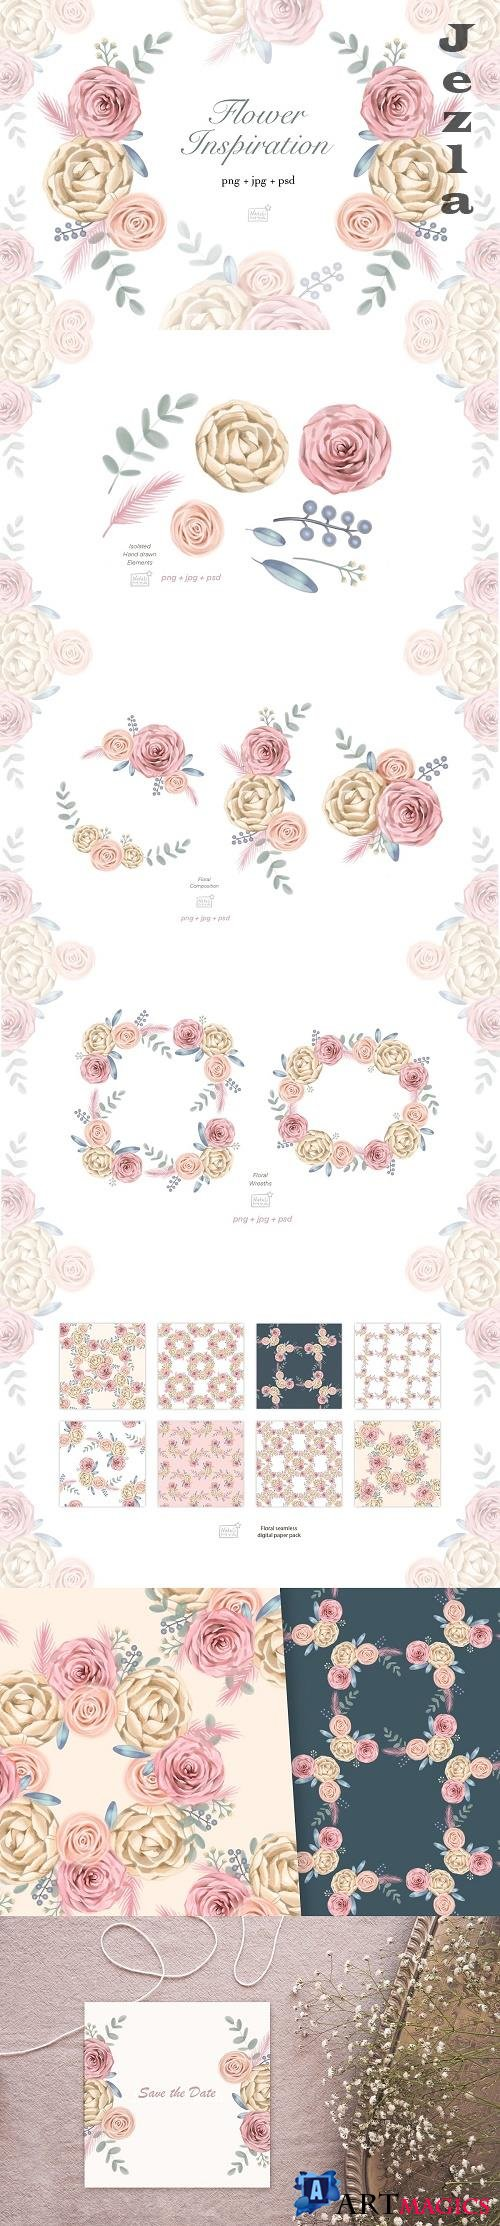 Watercolor cream roses cliparts - 4777526